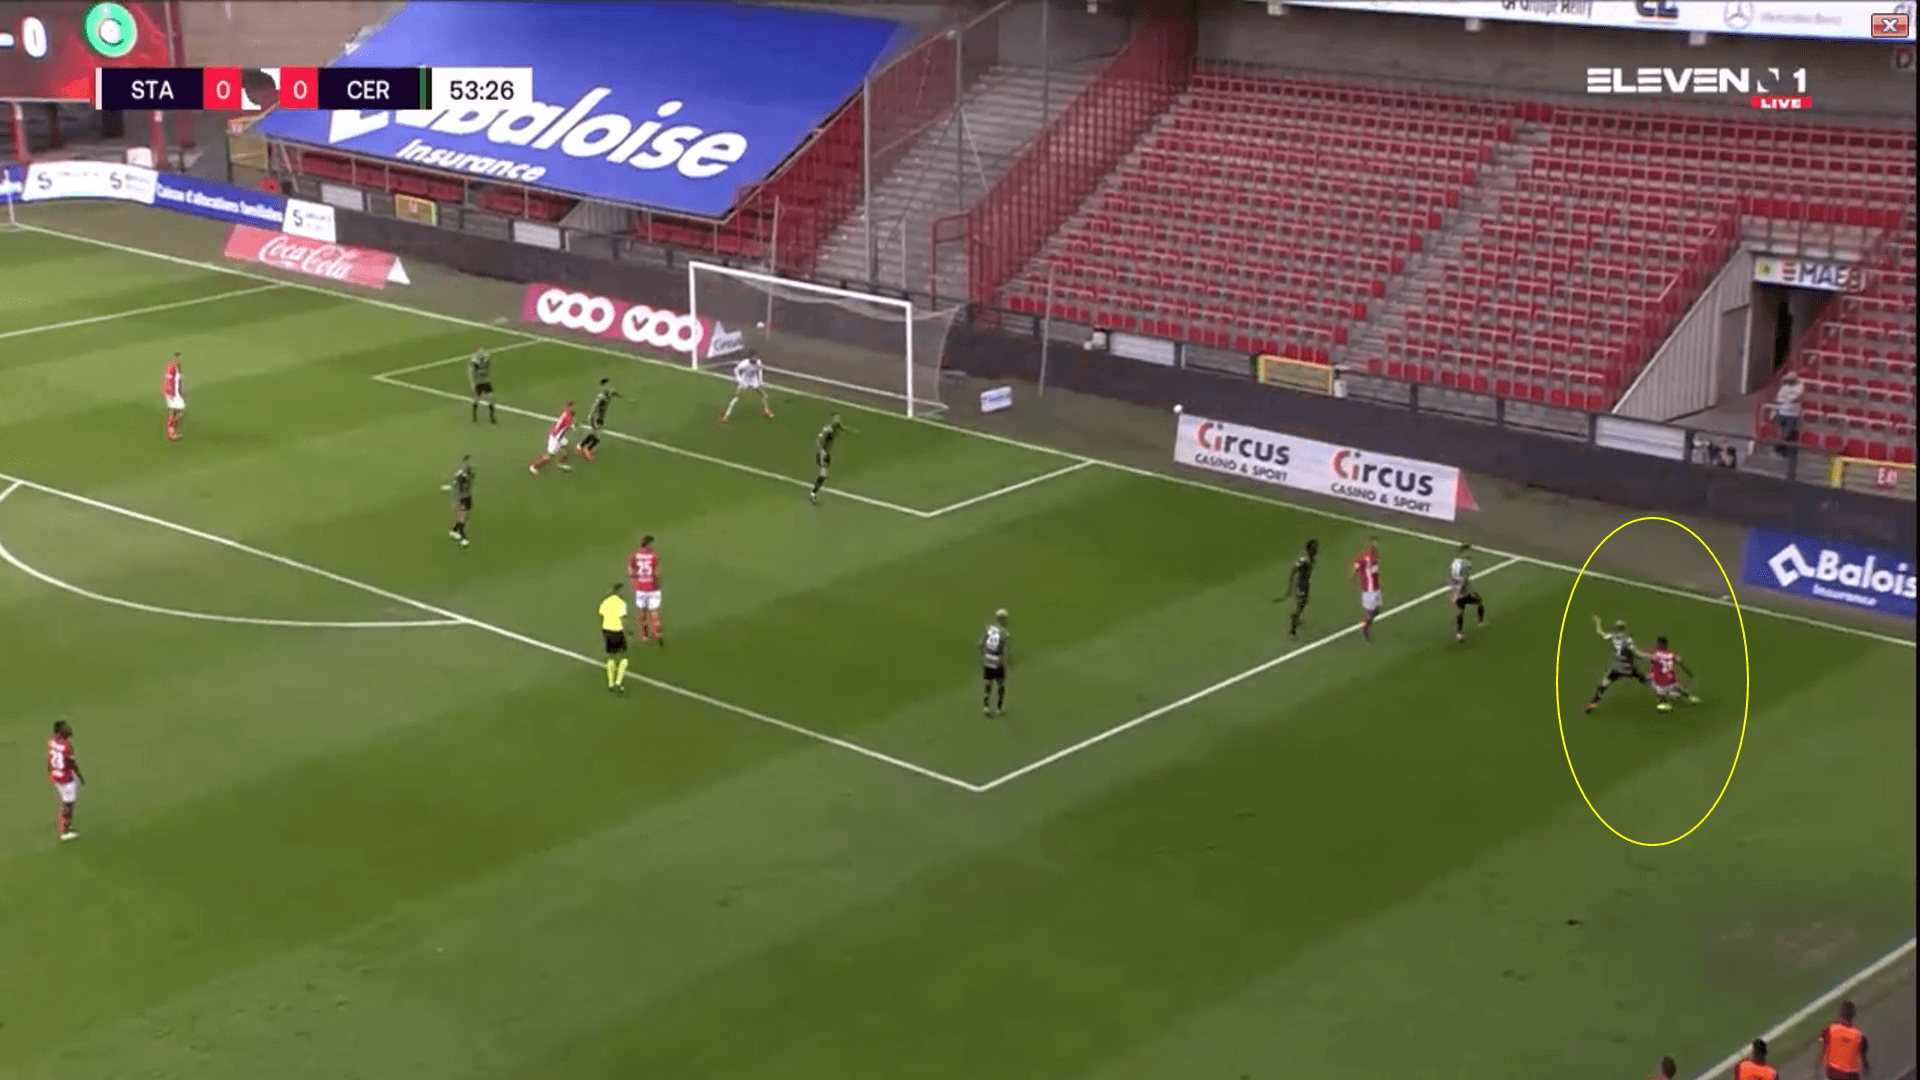 Belgian Pro League 2020/21 Standard Liege v Cercle Brugge - Tactical Analysis Tactics